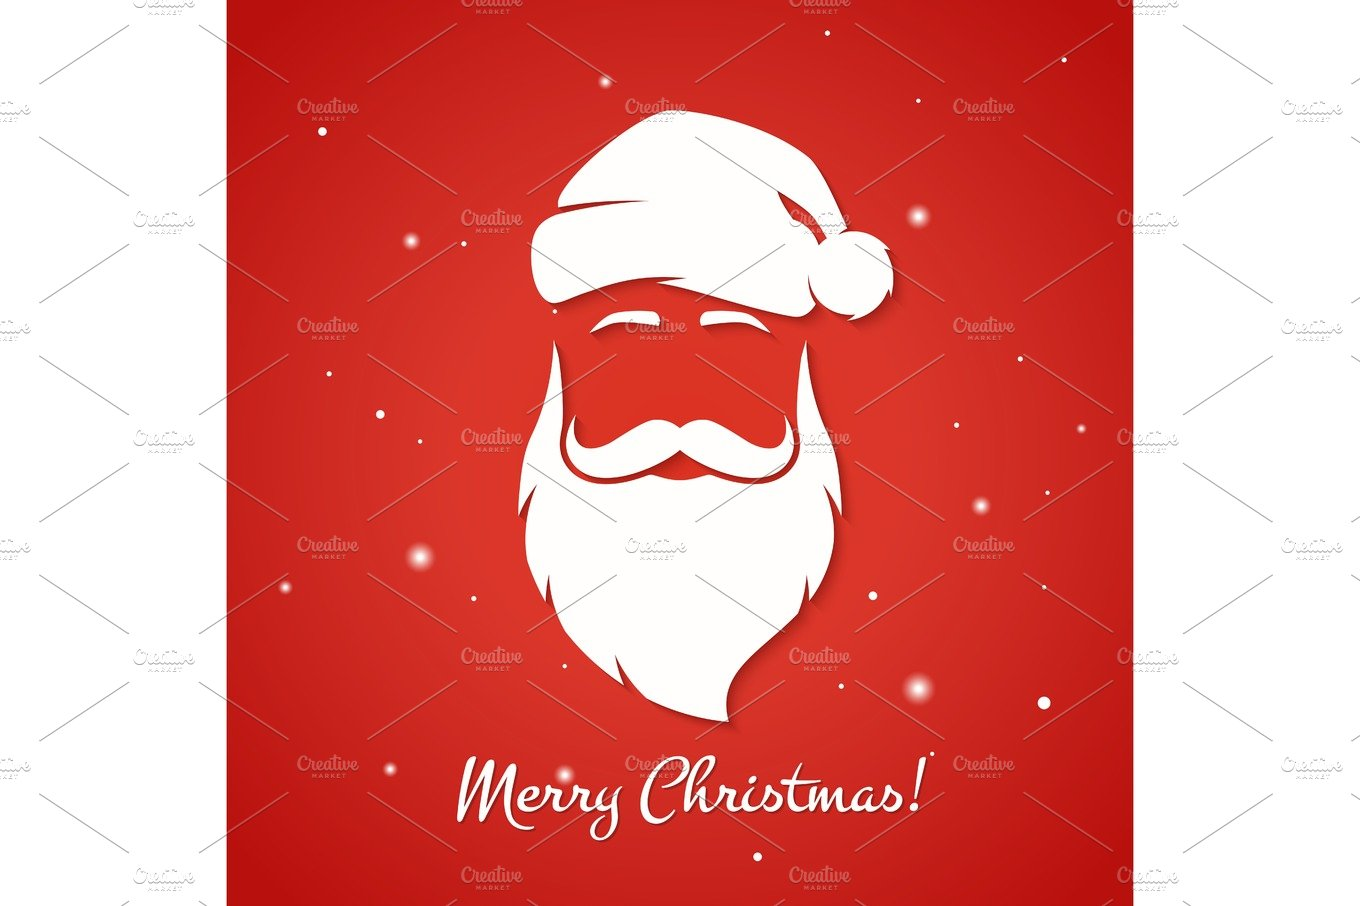 Merry Christmas Greeting Card With Santa Claus Silhouette